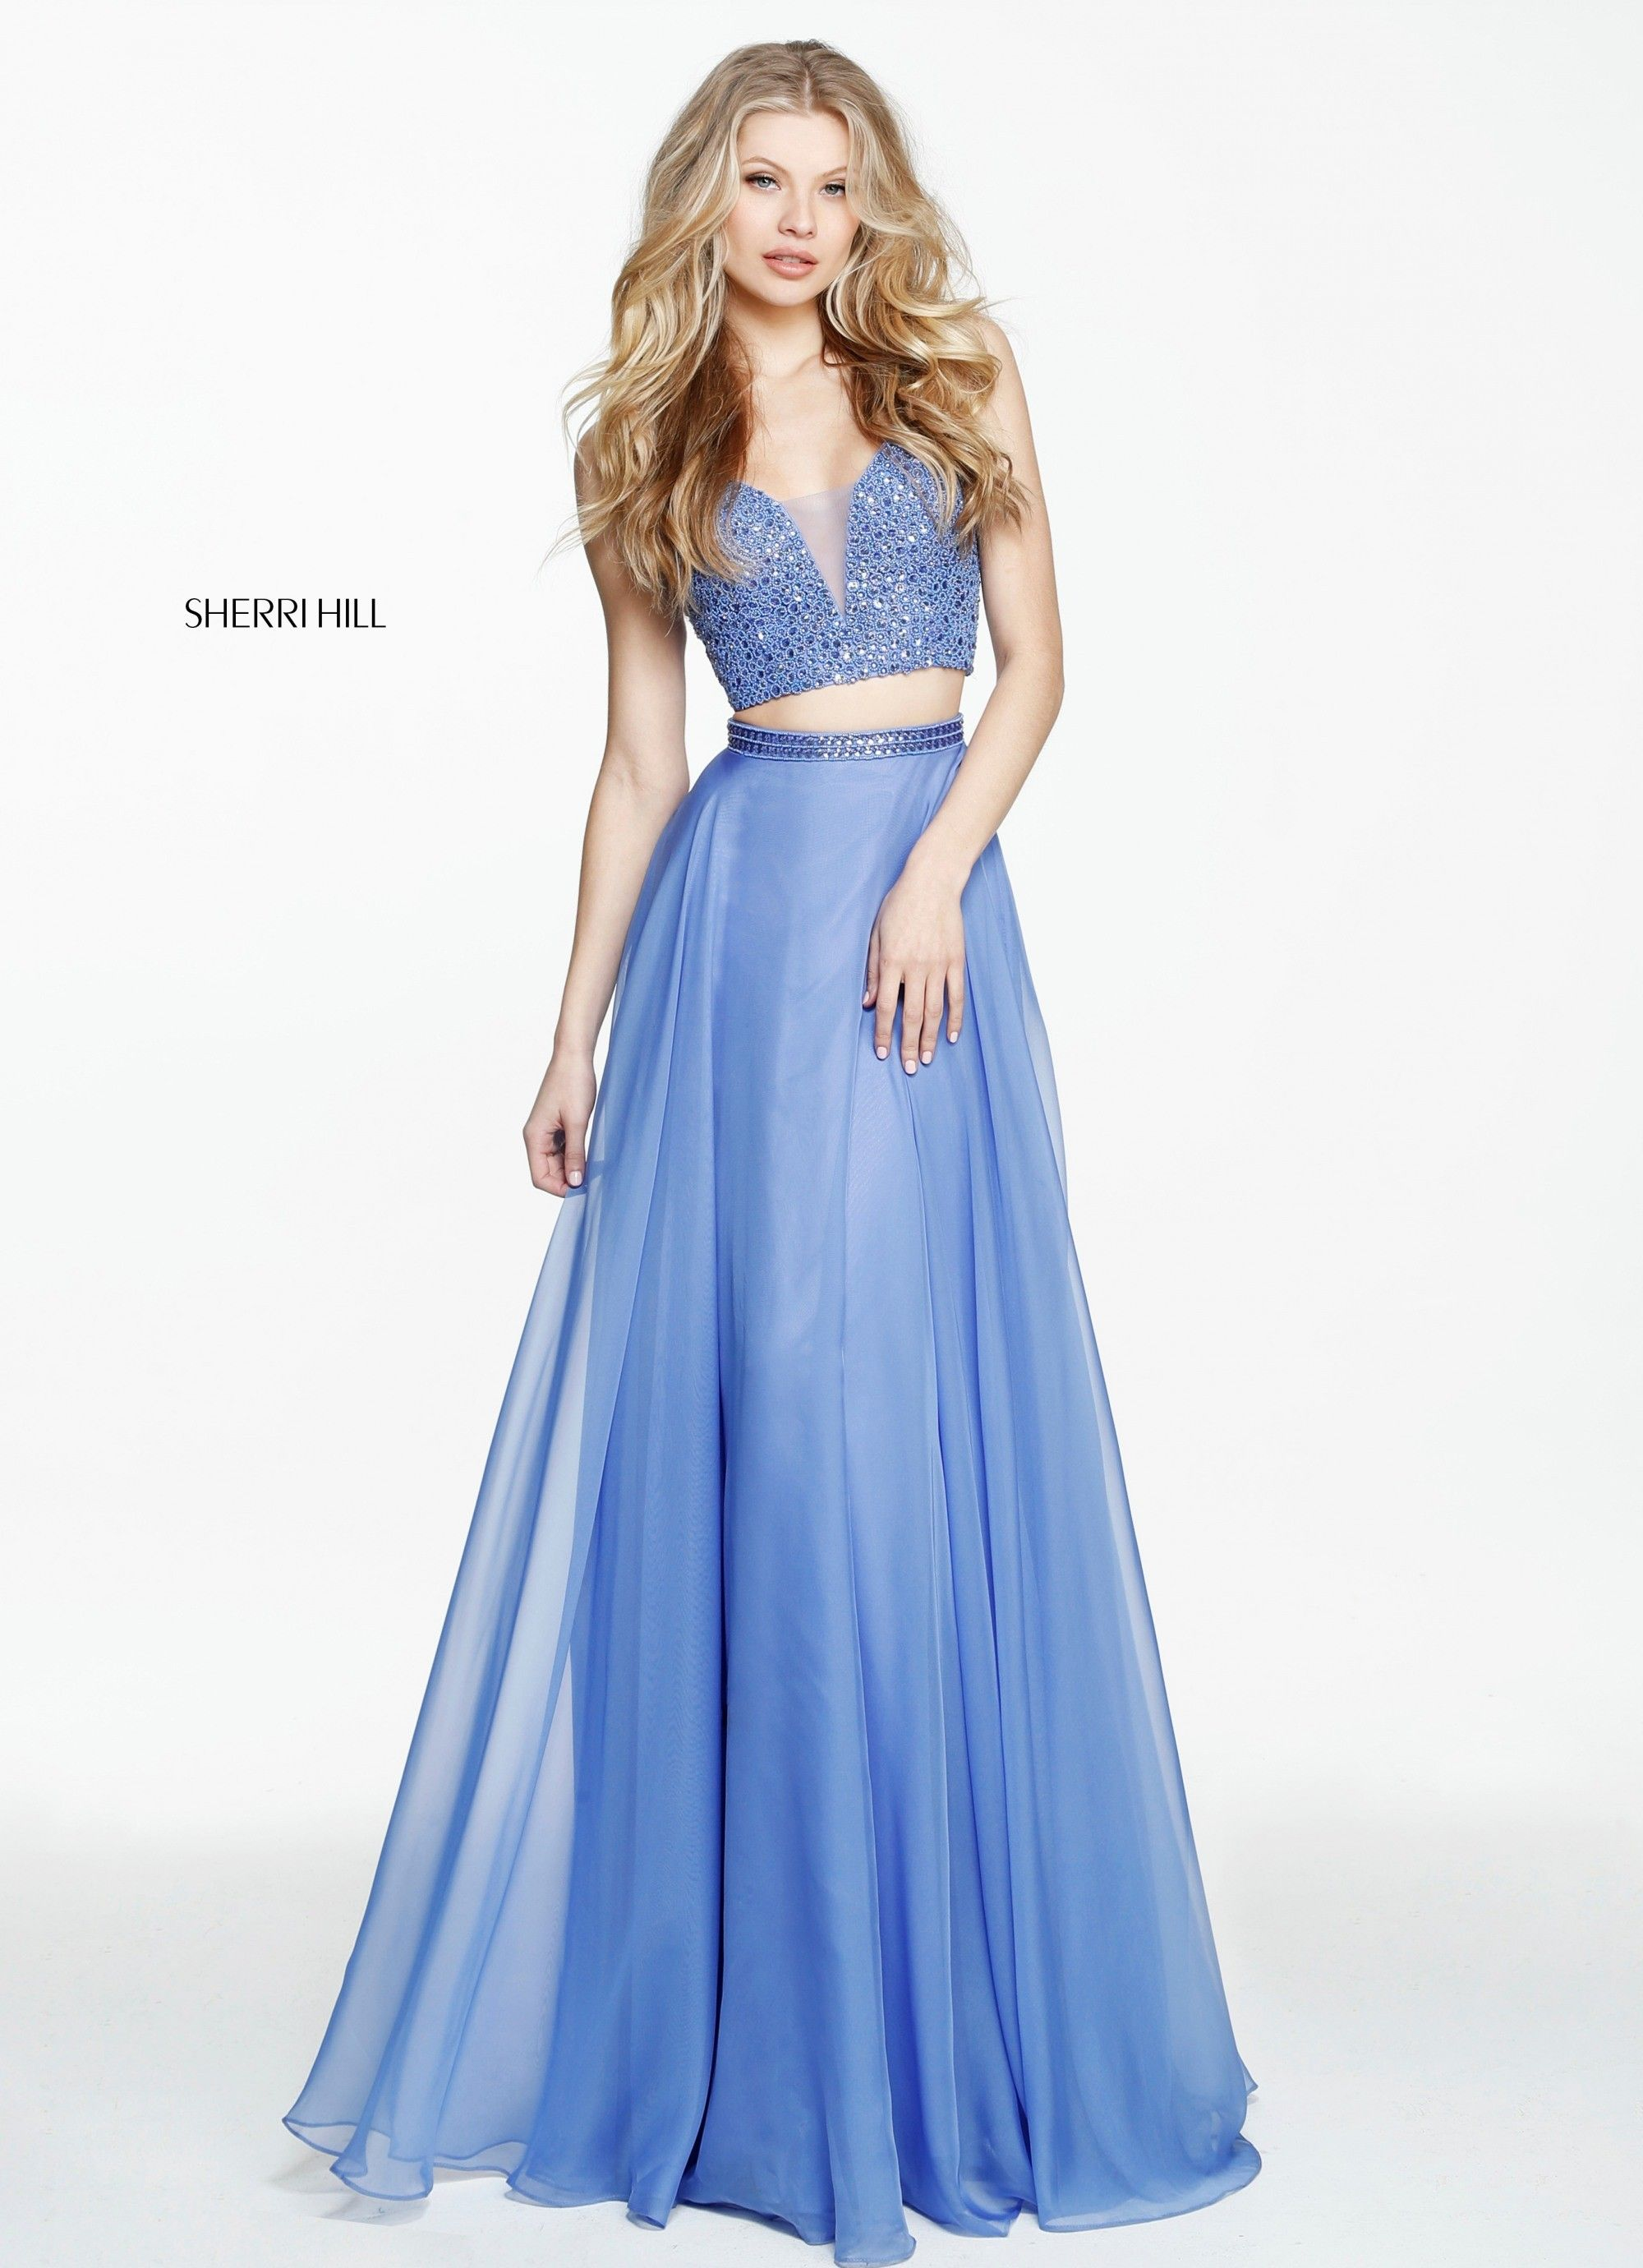 Fit For A Modern Day Princess Sherri Hill 50800 Is Pictured In Periwinkle This Jeweled Crop Top P Sherri Hill Prom Dresses Piece Prom Dress Cute Prom Dresses [ 2760 x 2000 Pixel ]